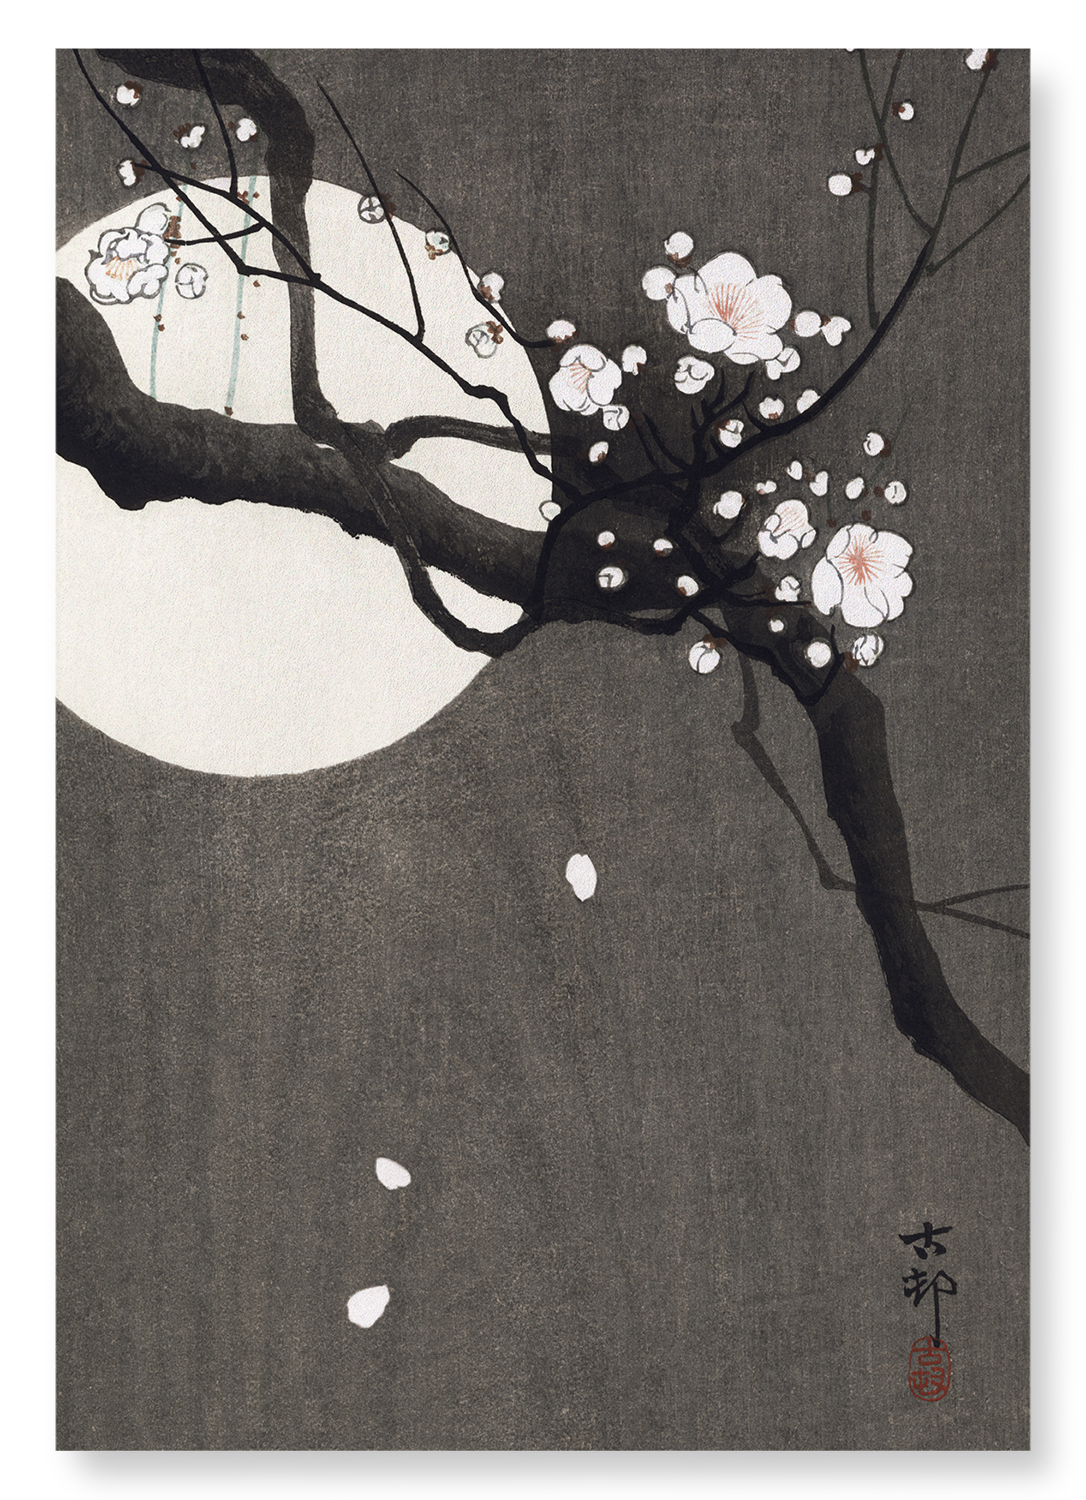 Plum blossom and full moon: 2xPrints